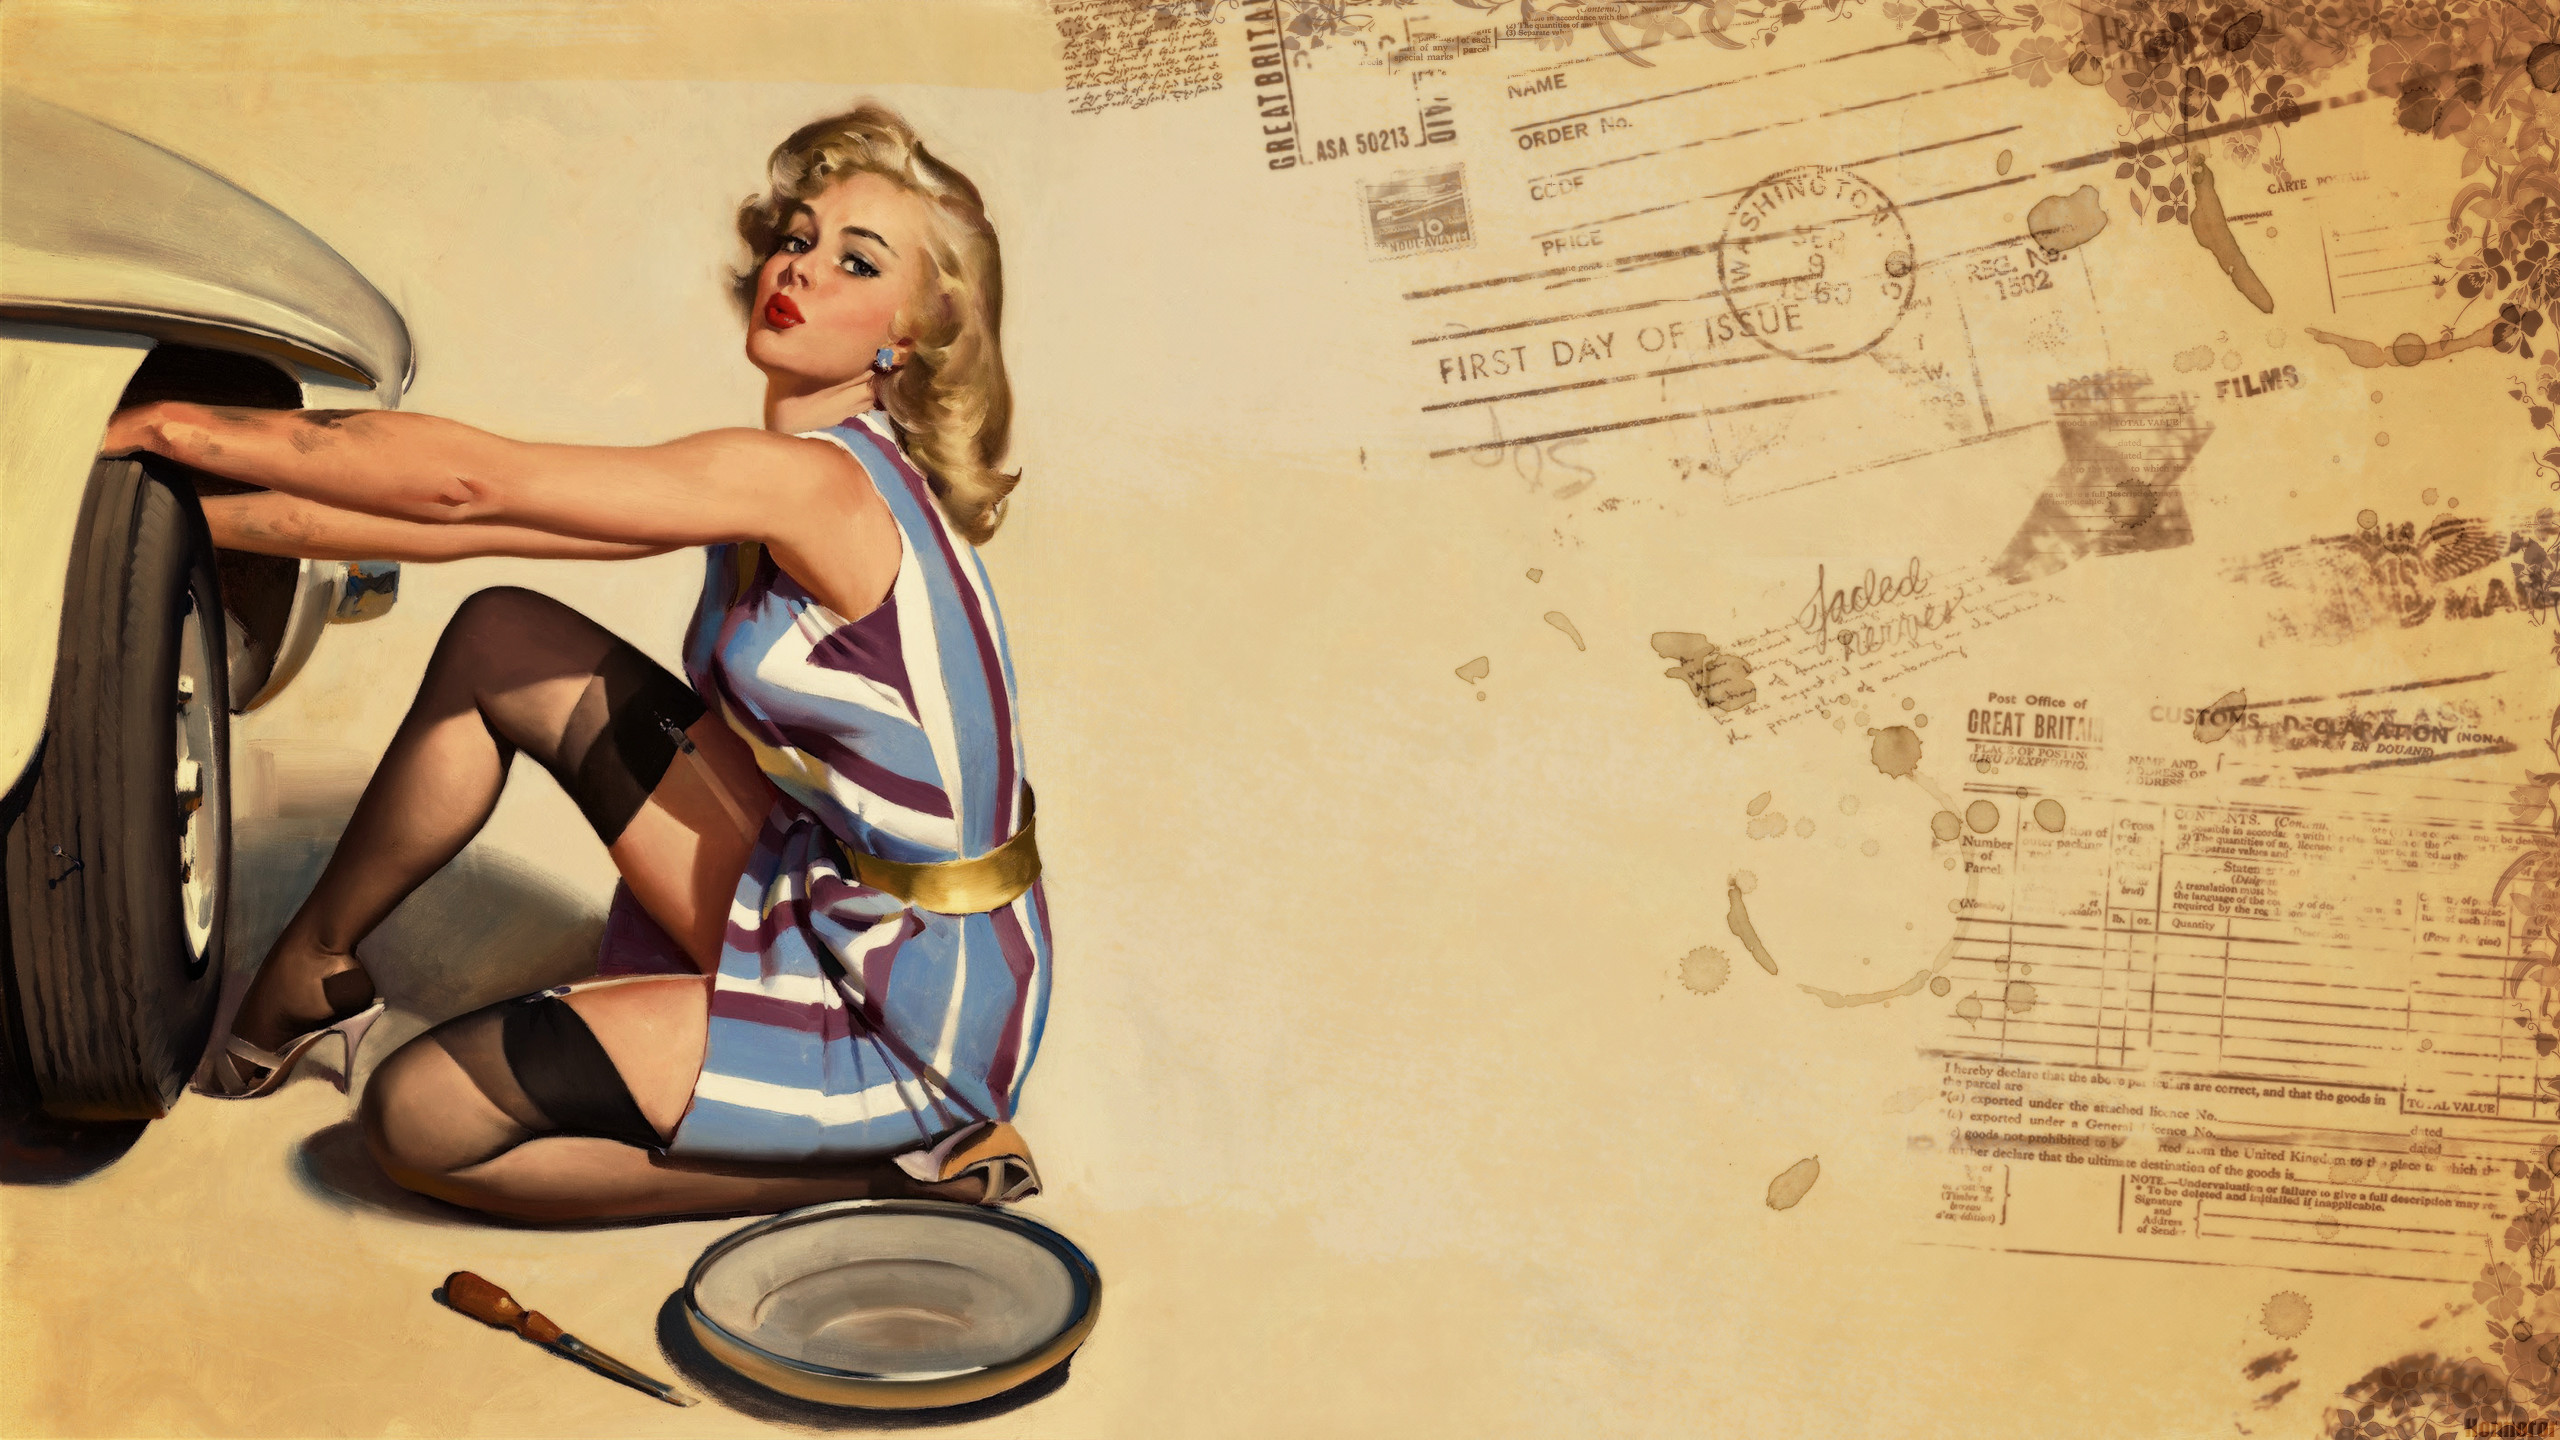 Pin-up Wallpaper, Style, Retro, Girls, Honnoror   Wallpapers